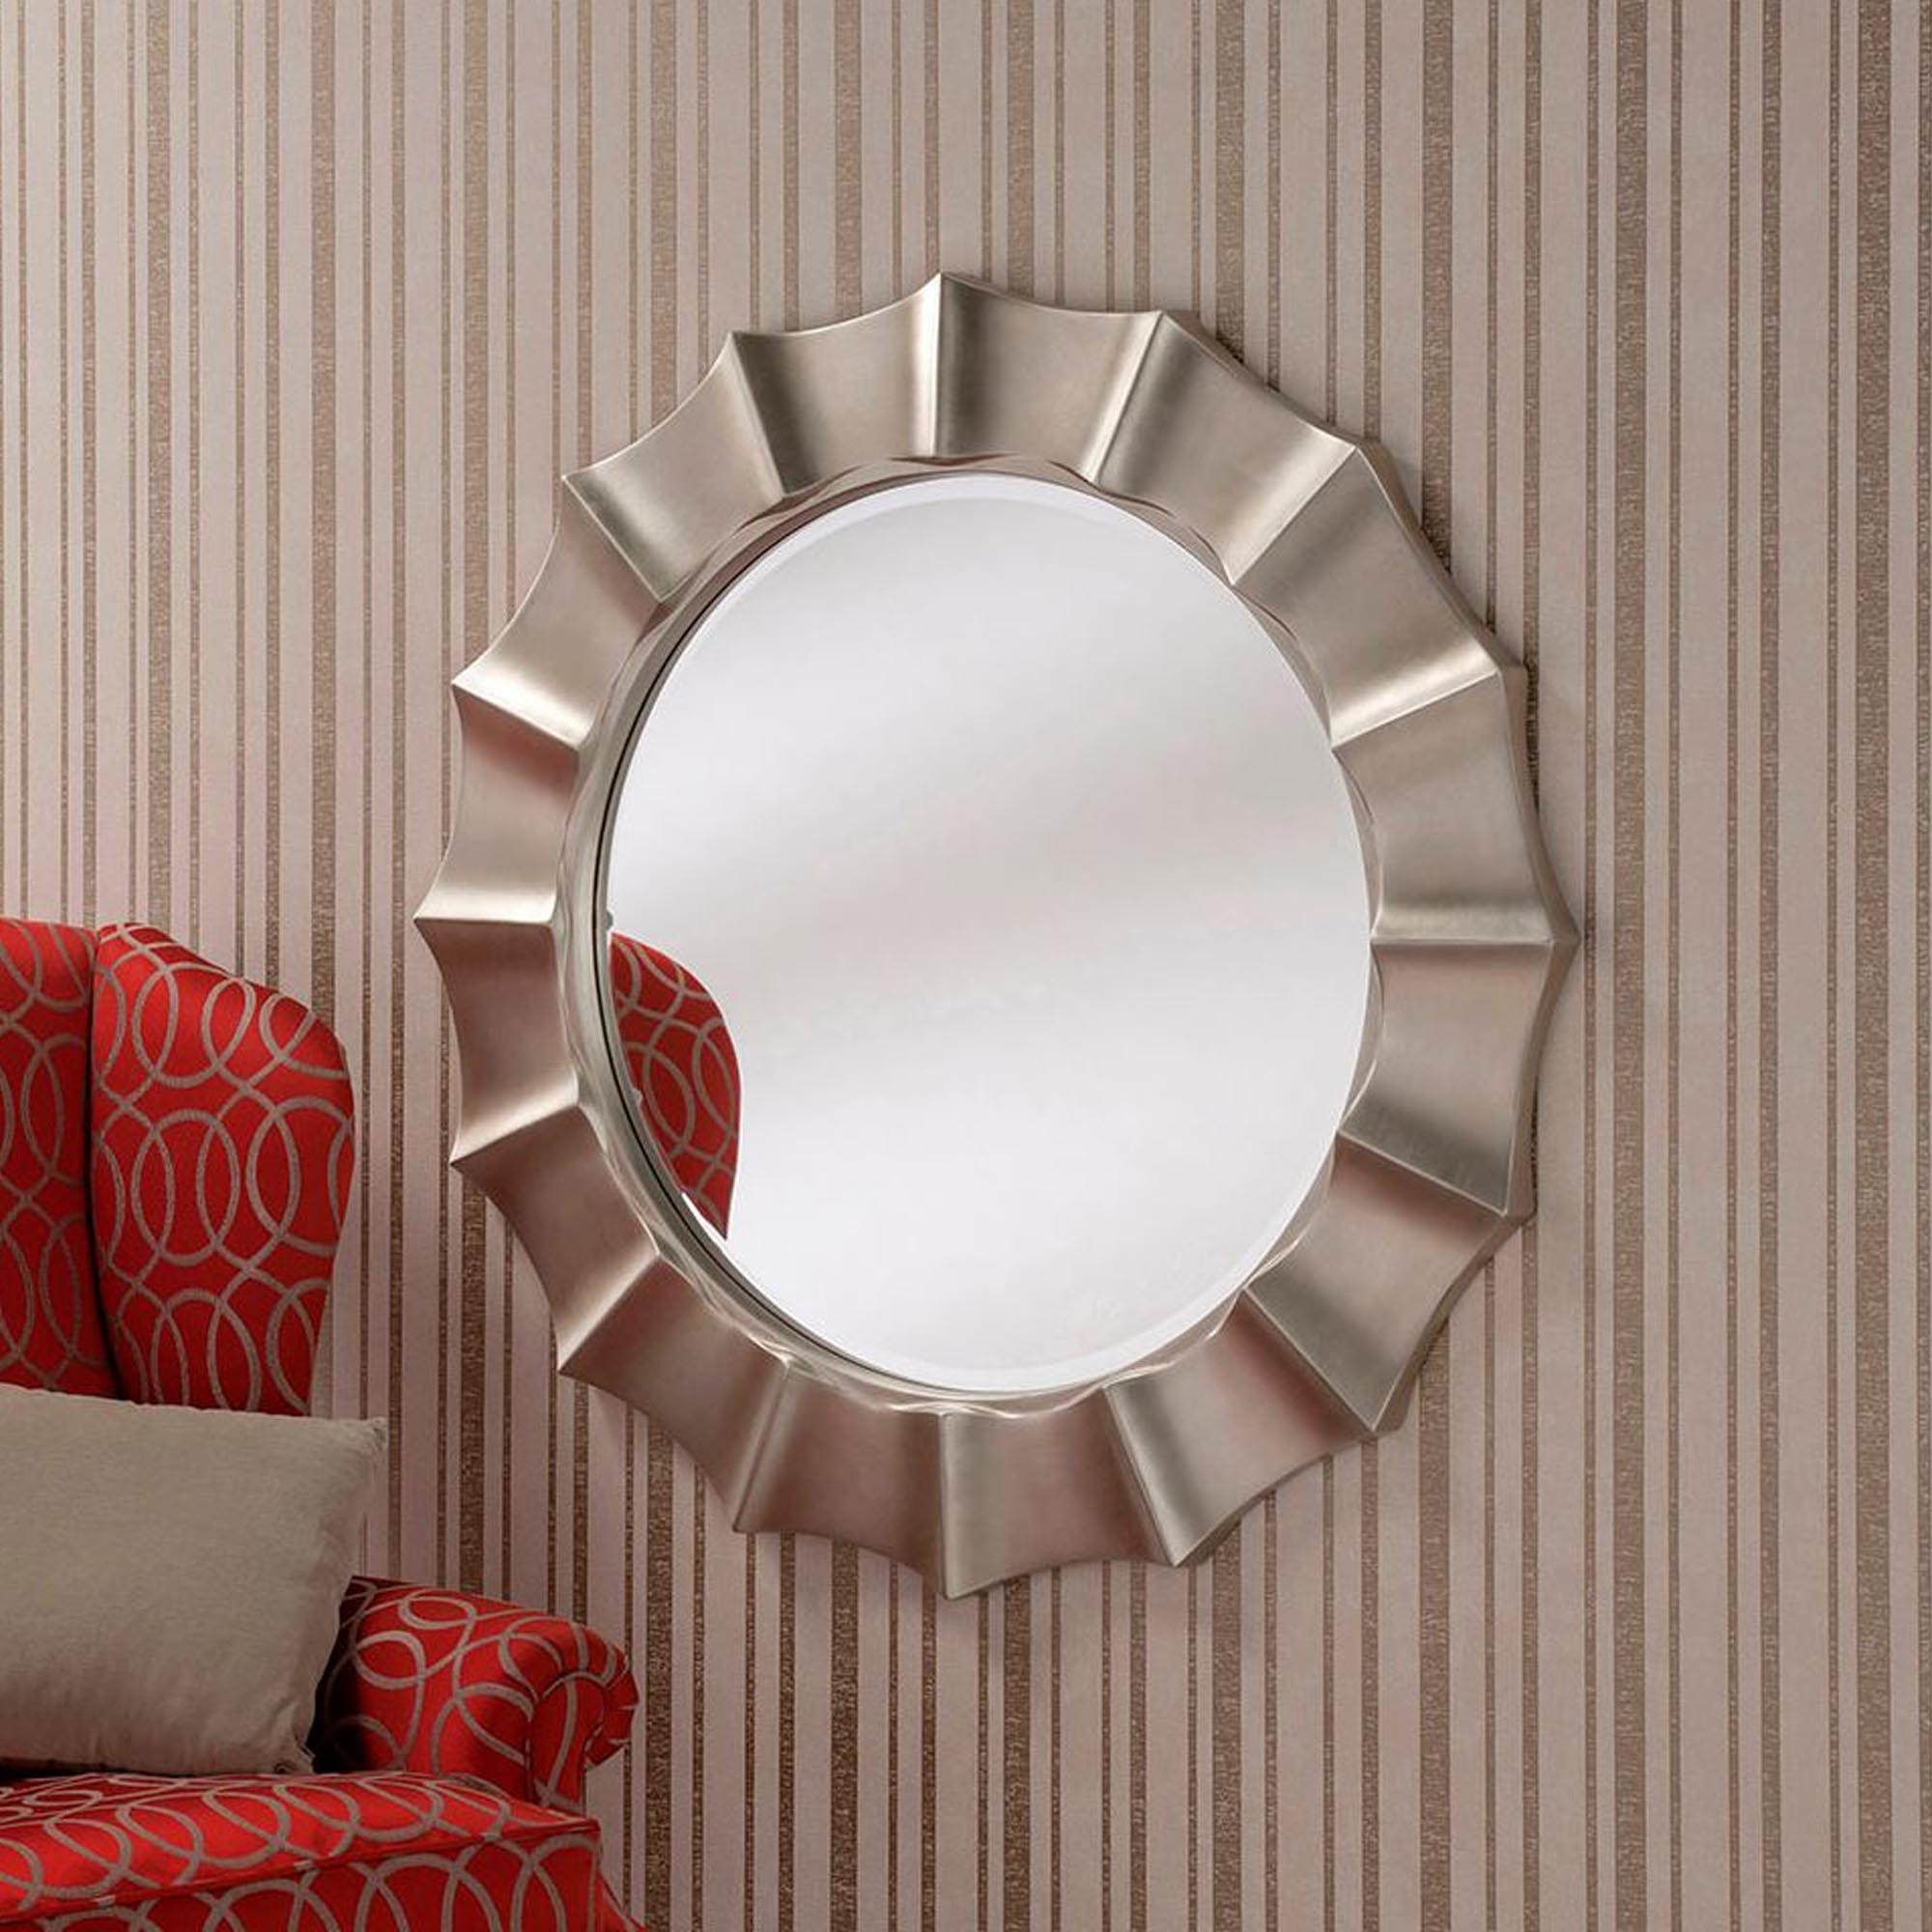 2019 Bevelled Round Silver Wall Mirror Pertaining To Round Silver Wall Mirrors (View 19 of 20)